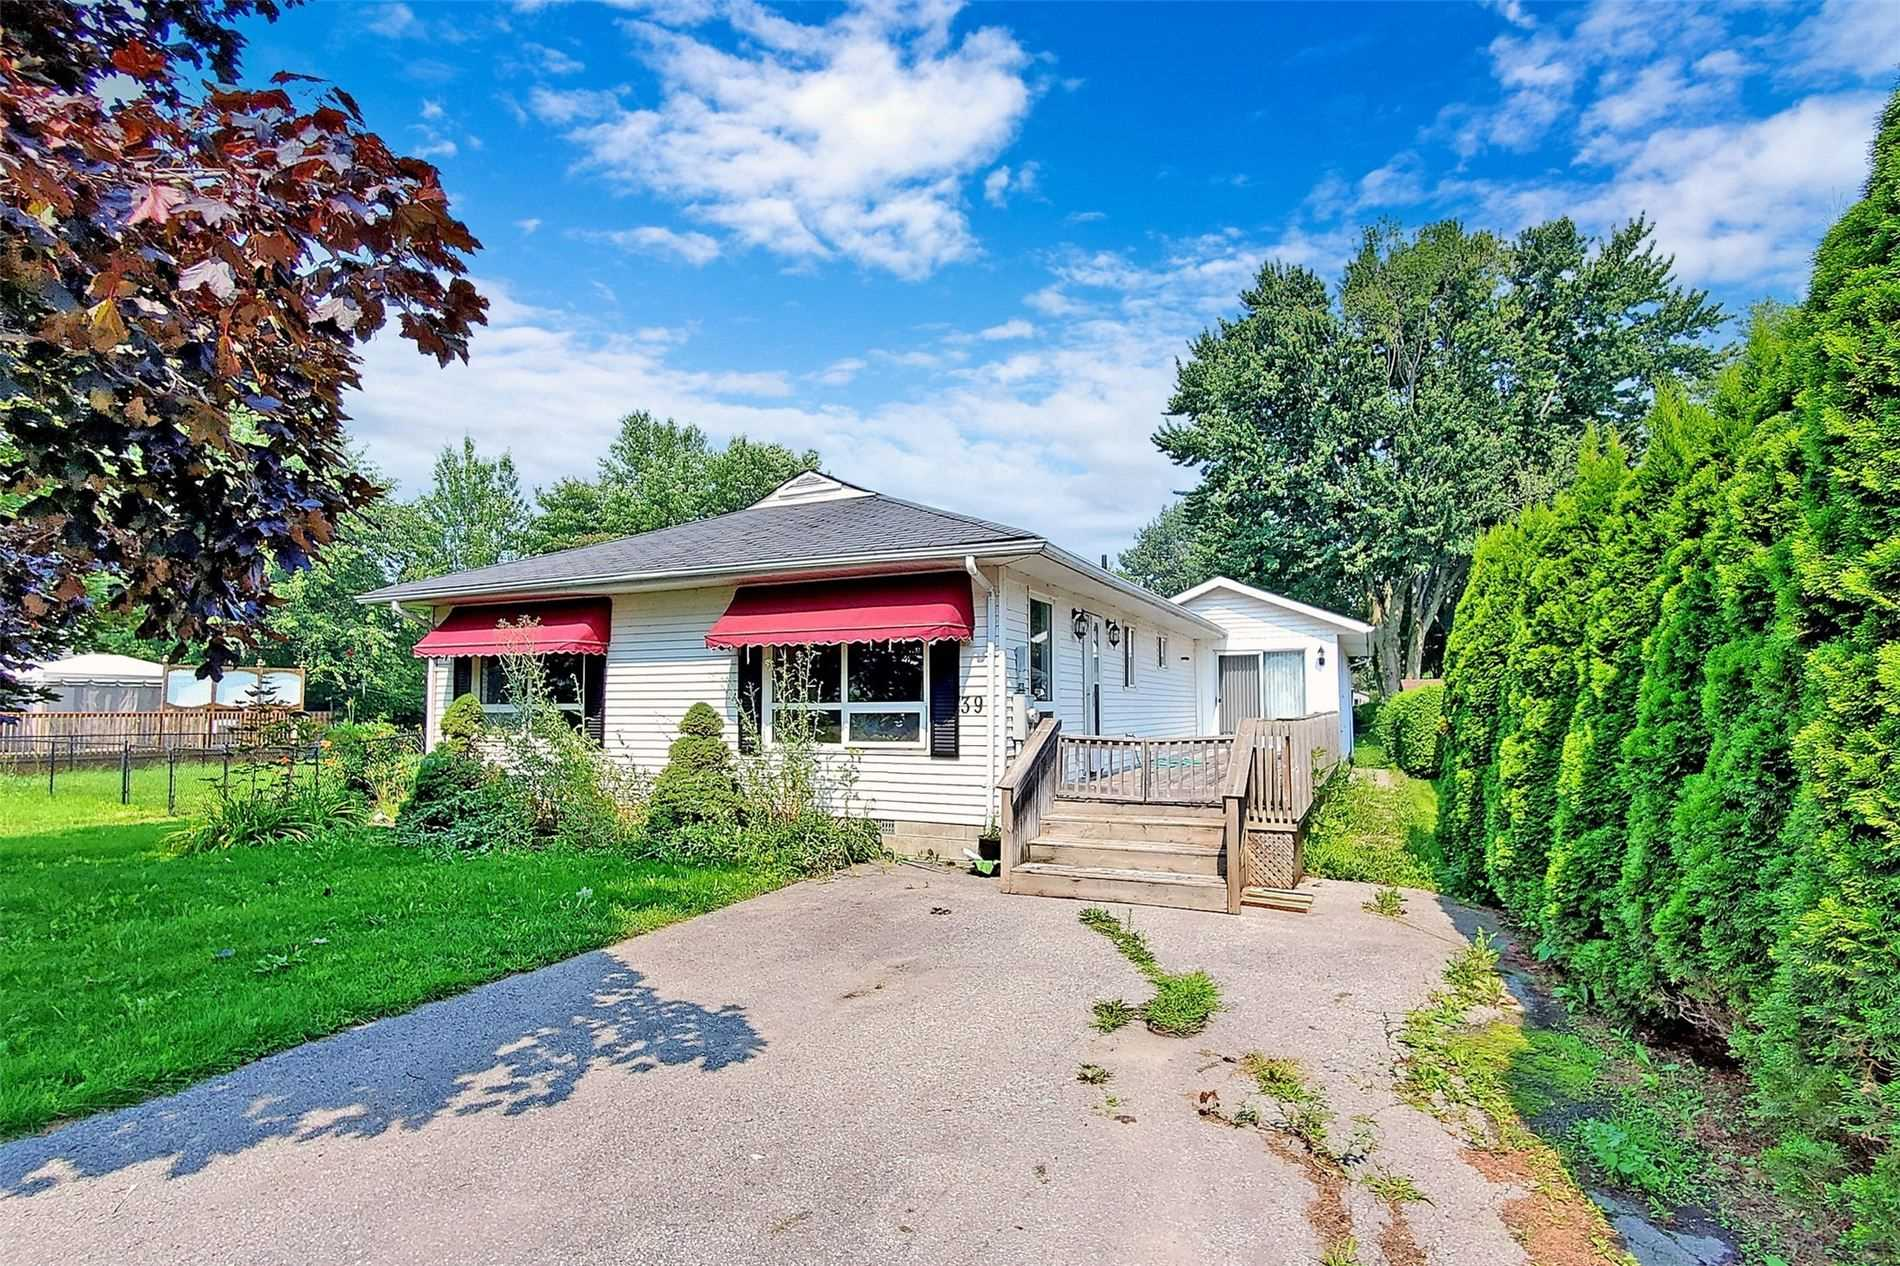 Located In Lagoon City. An Active Community Centre With Restaurant, Marina, Boating, Fishing, And Swimming. Spacious 3 Bedroom Cottage With Two Seperate Units.Great For Guests, Rent, Or Large Families. Walk Across The Street For Deeded Access To Sandy Beach In Lake Simcoe.